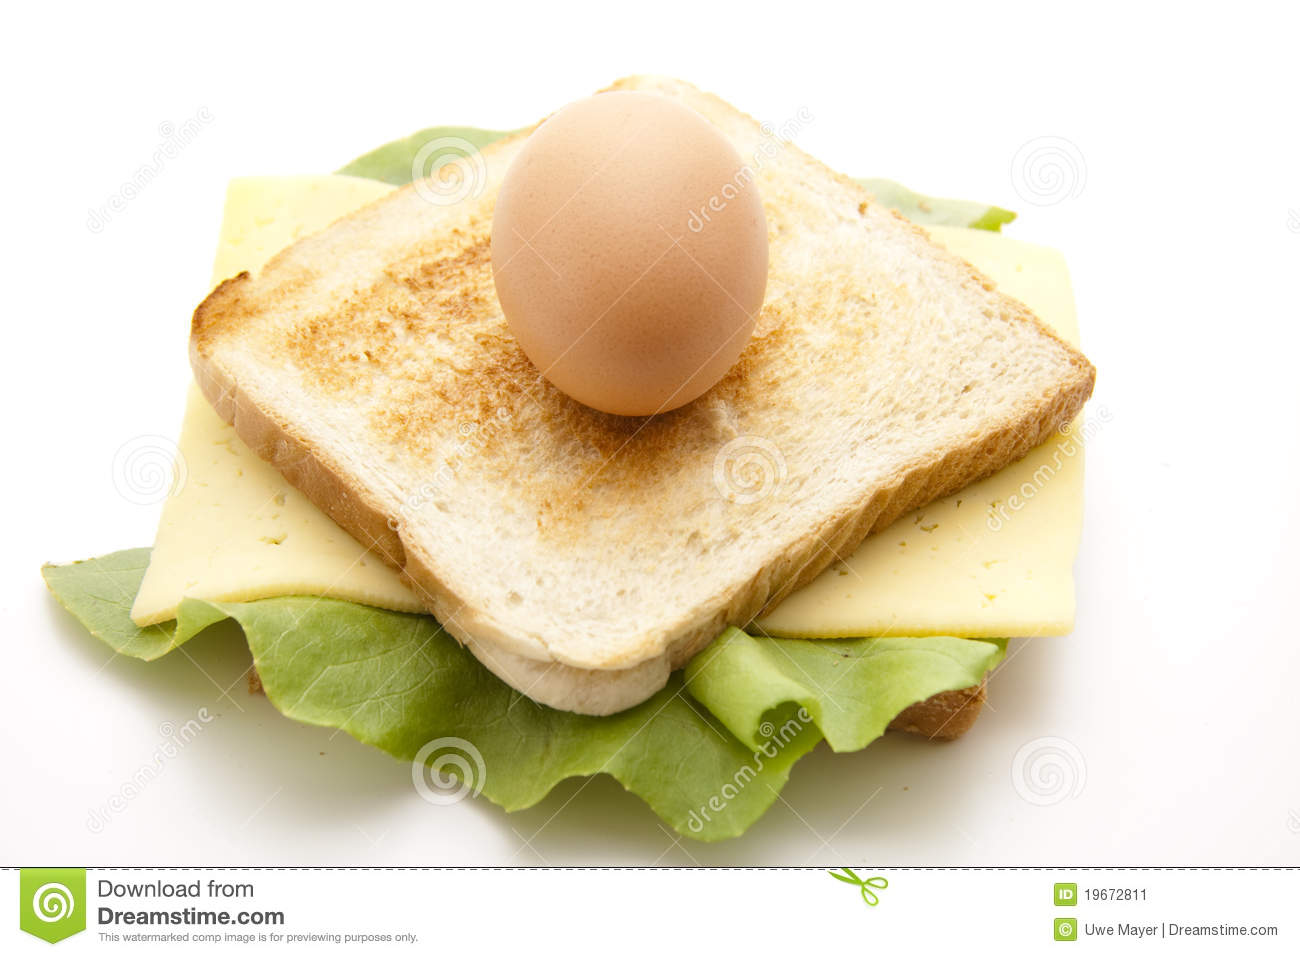 Egg On Sandwich With Cheese Stock Image   Image  19672811